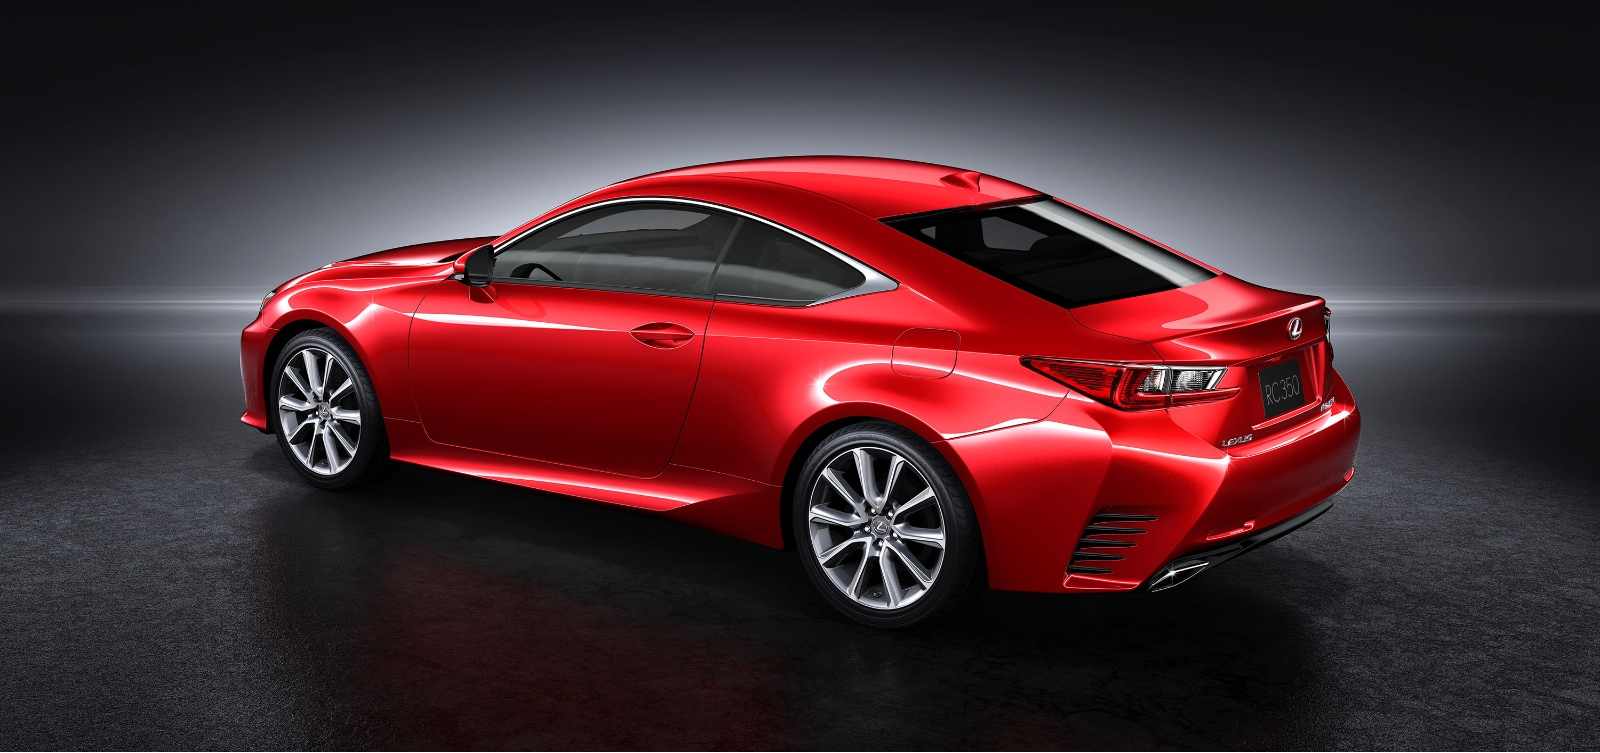 Lexus Rc 350 F Sport To Debut At Geneva Motor Show 2014